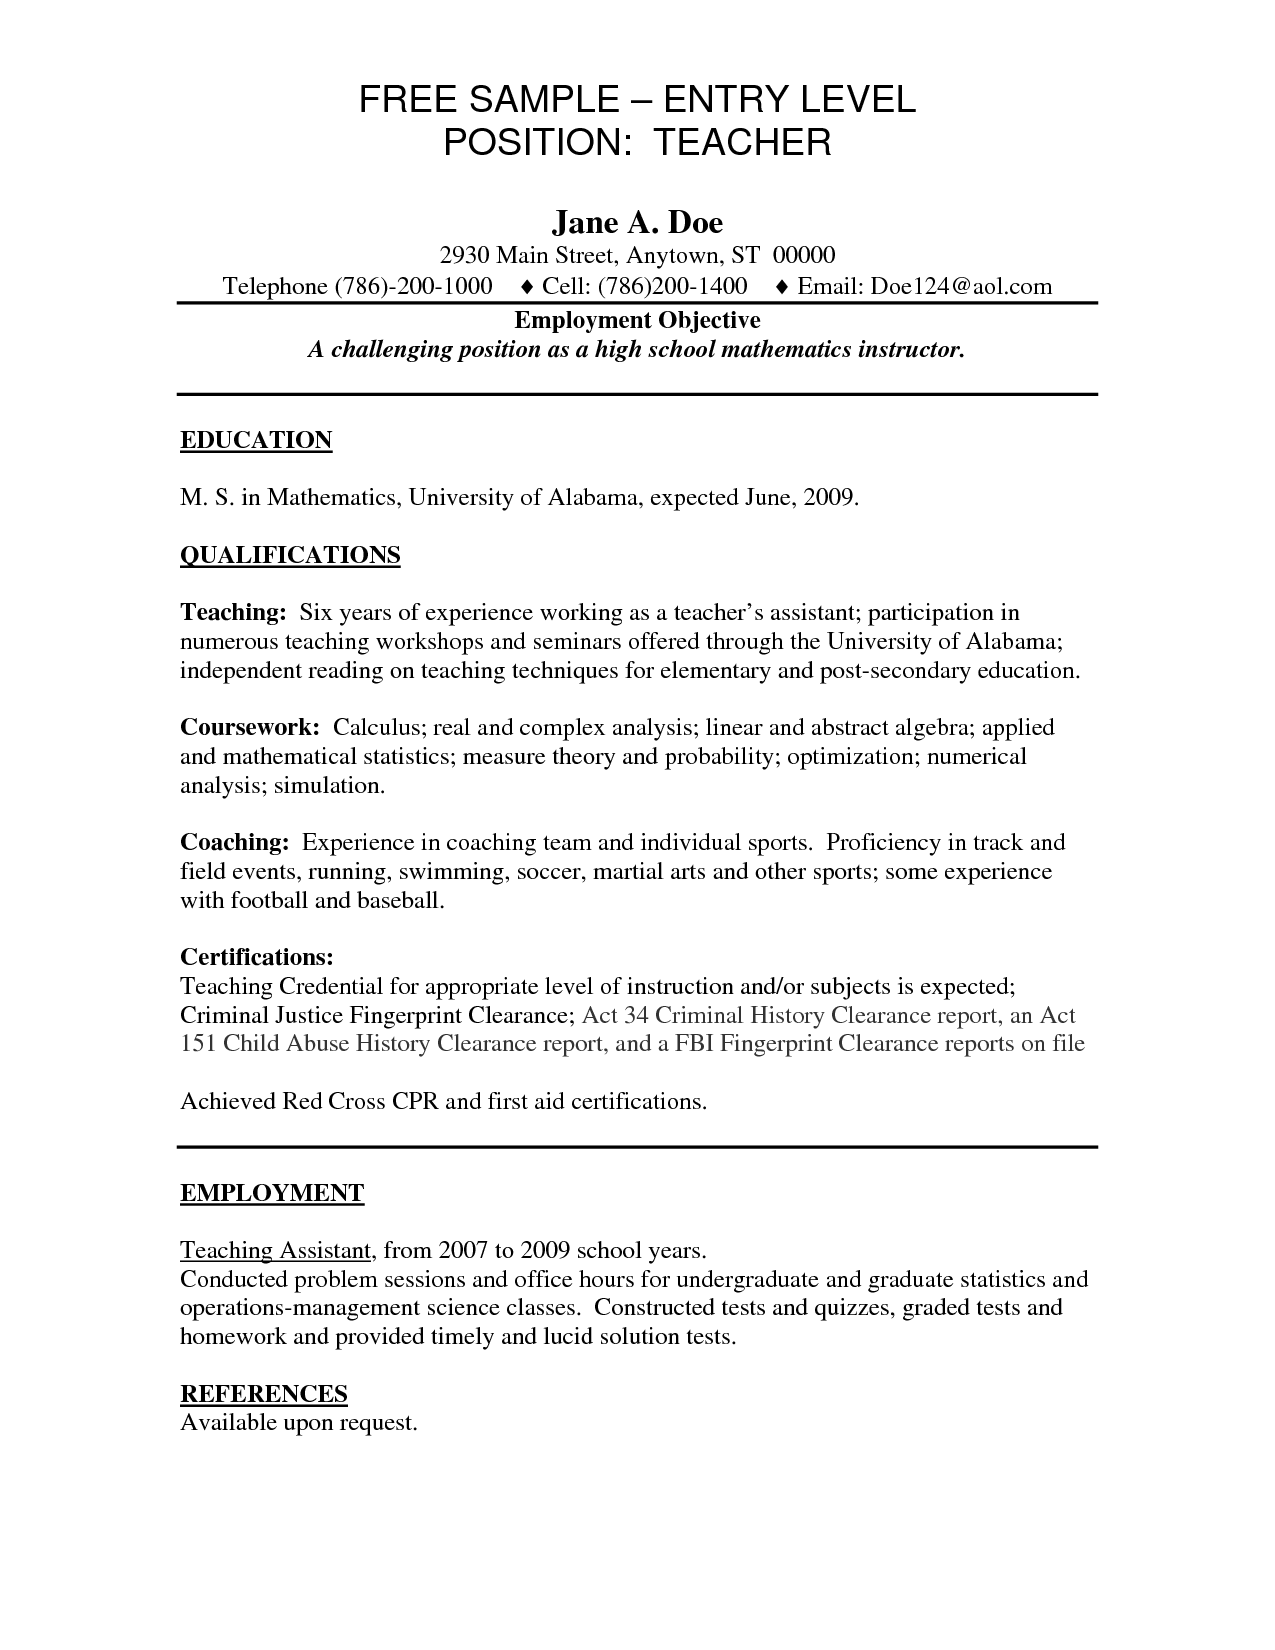 Entry Level Teacher Resume Art Example Teaching Jobs Lawteched Free  Template For  Resume Entry Level